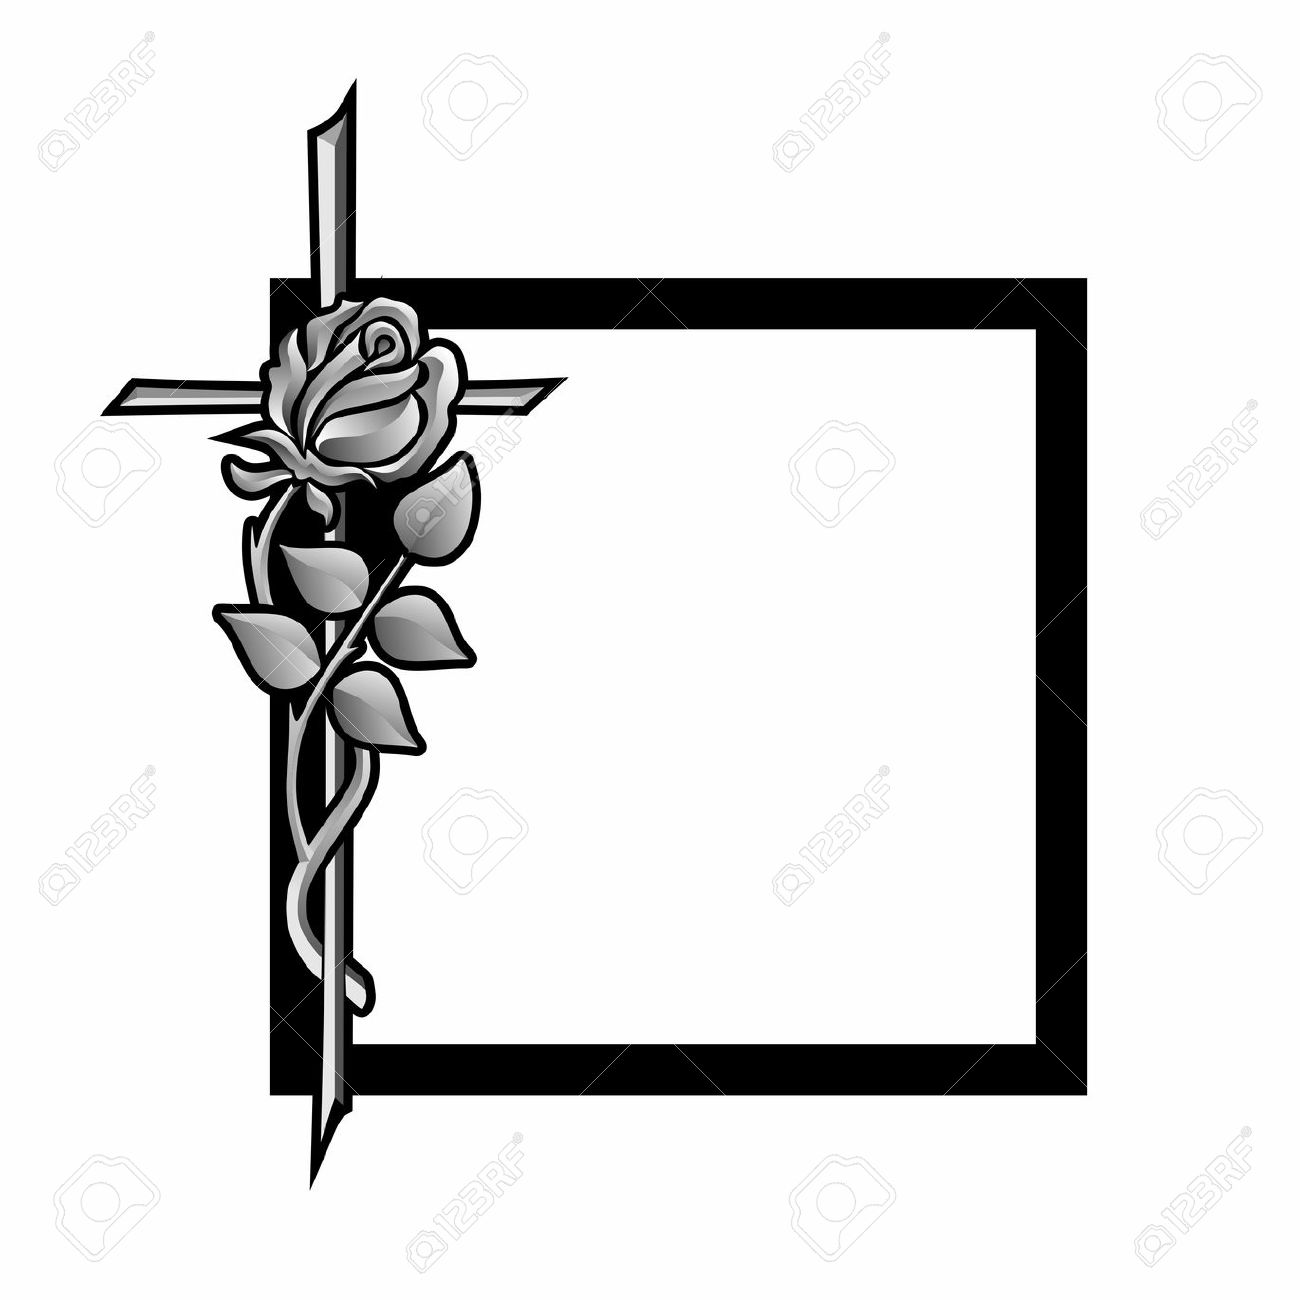 cross of remembrance stock photos royalty free cross of